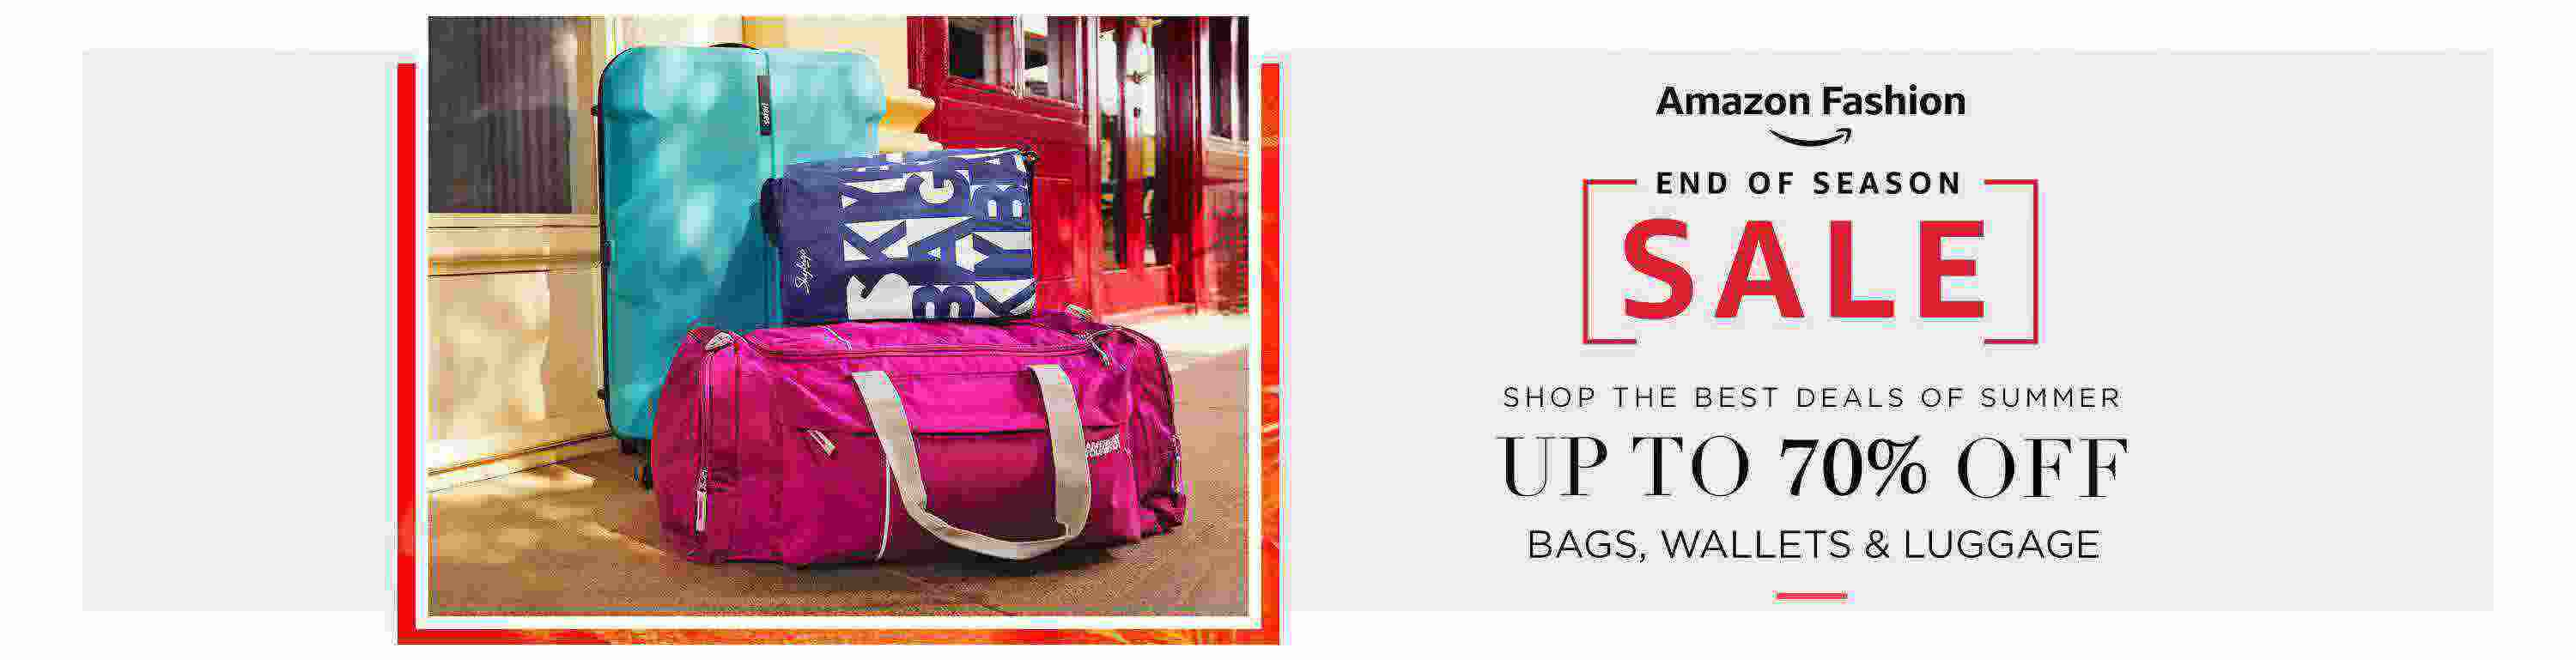 Buy Bags For Travelling (in discount) - Bags, Wallets, Luggage and More